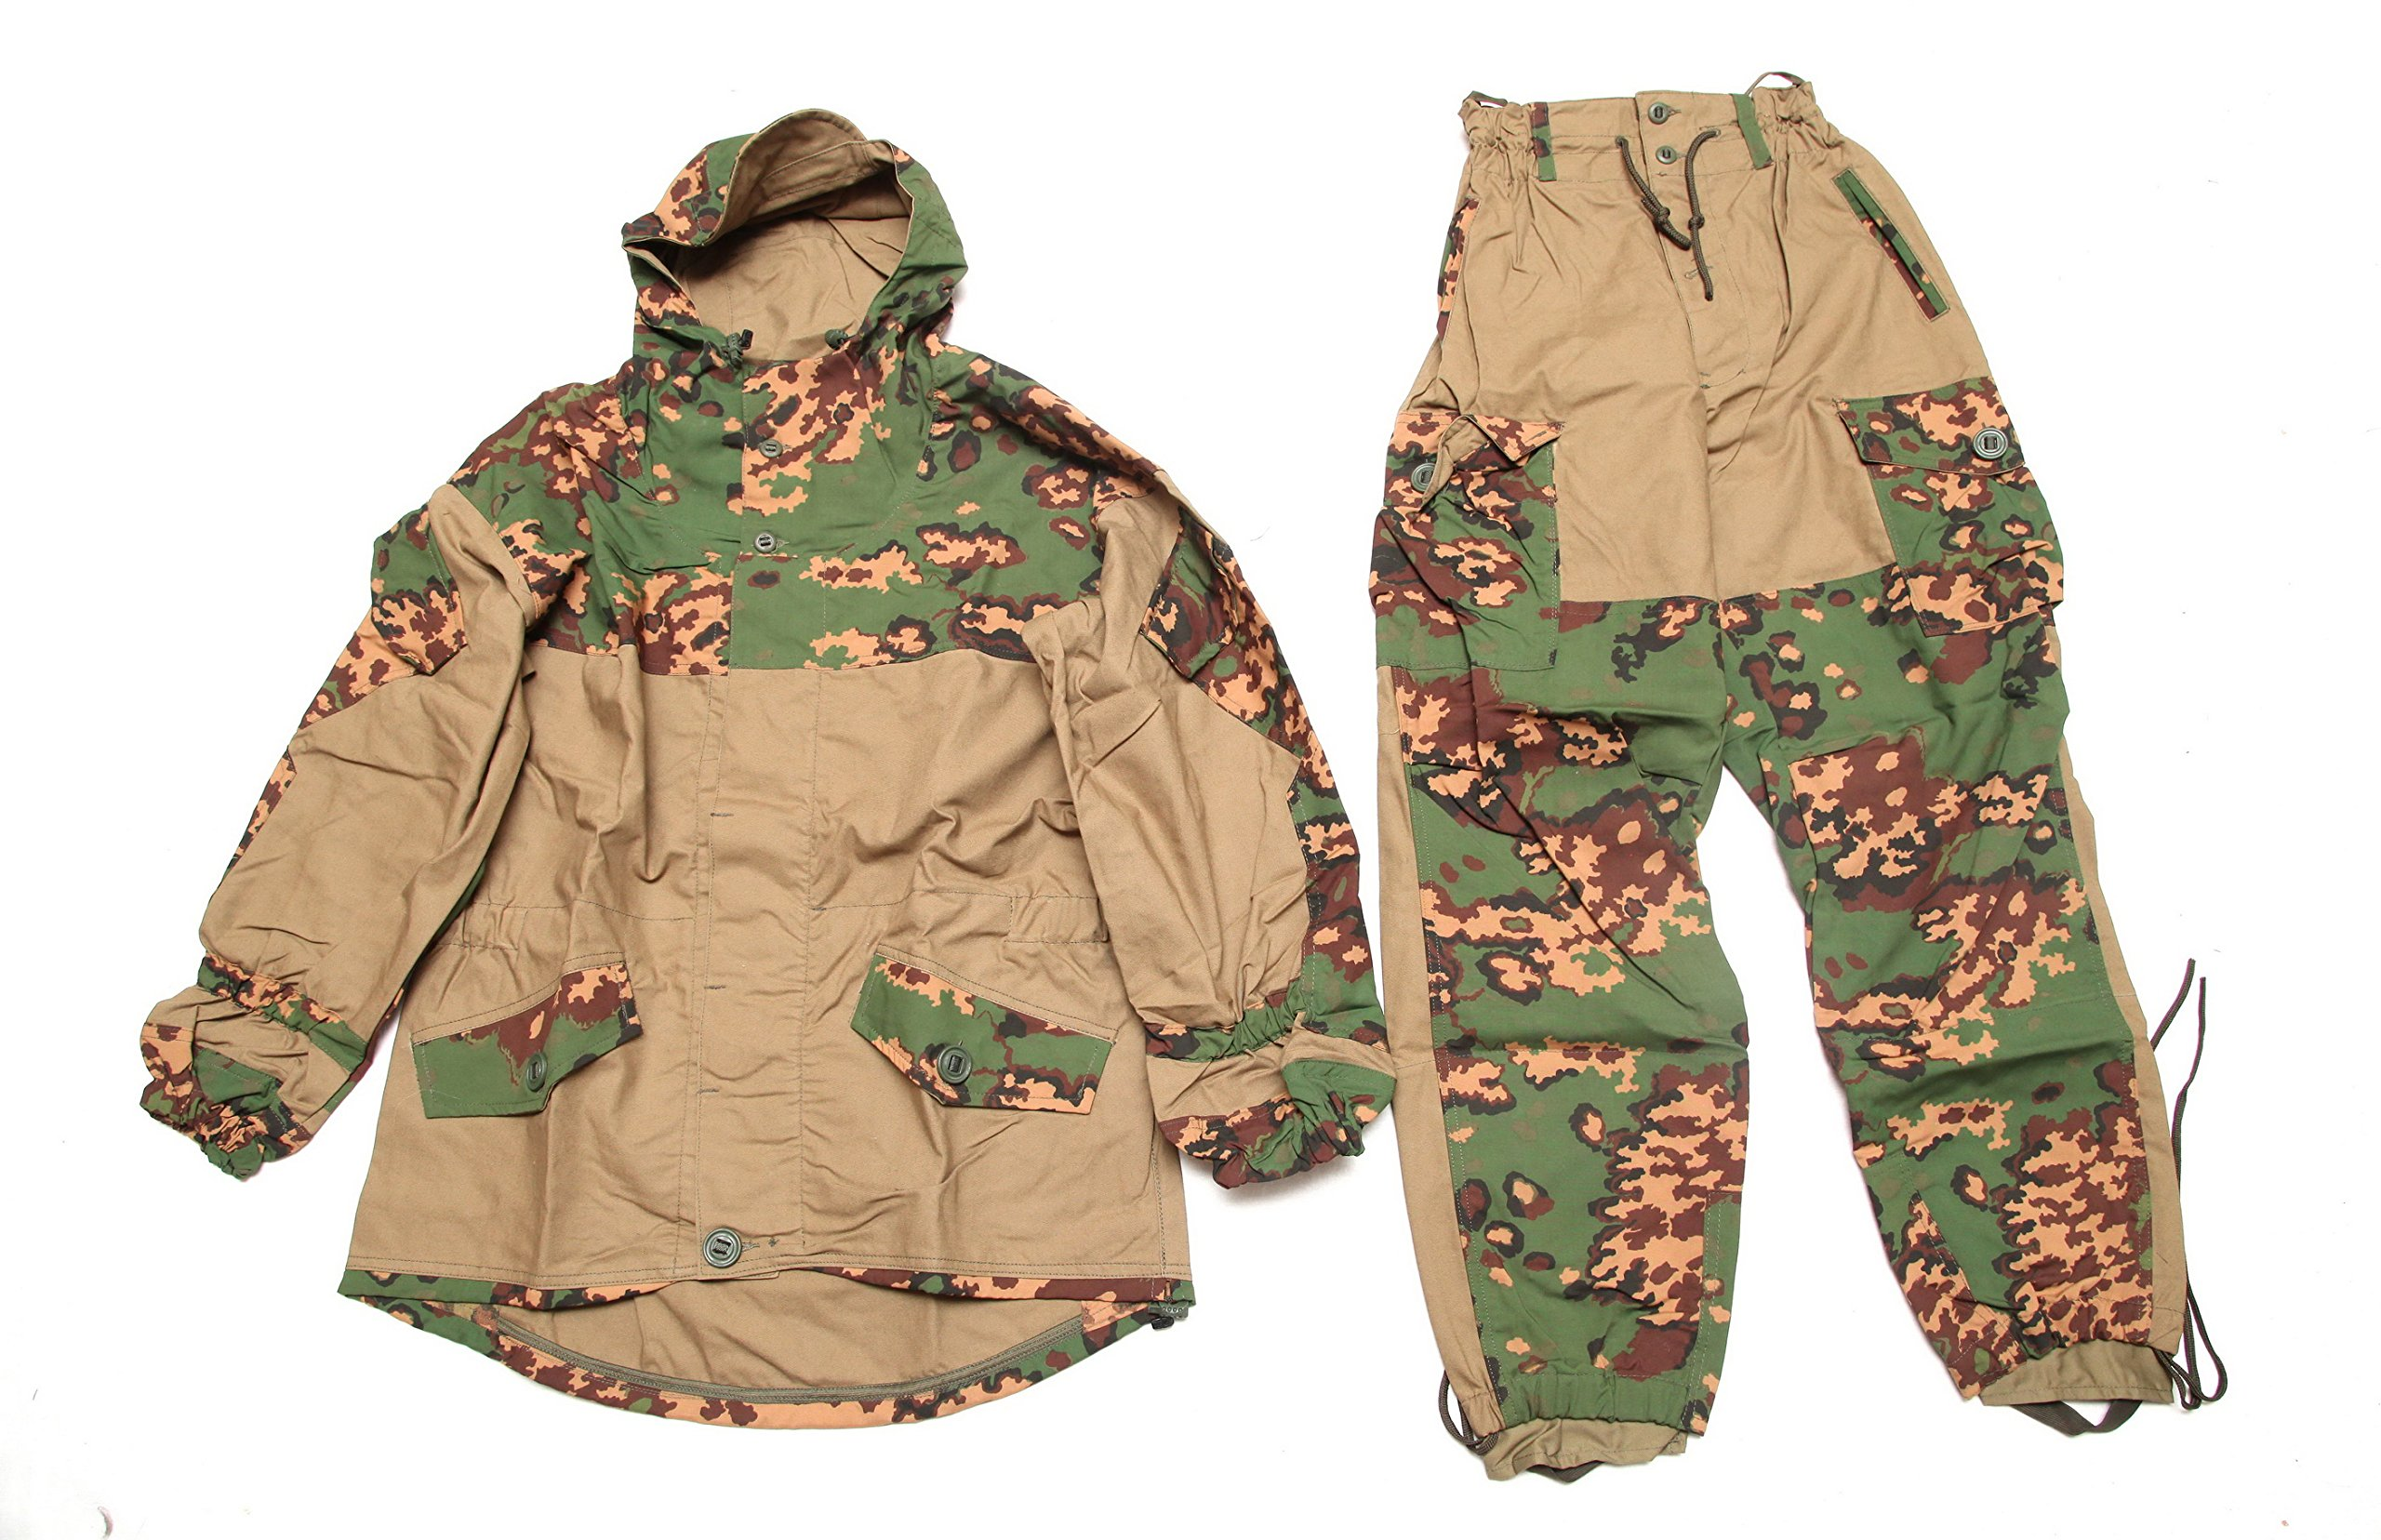 Gorka-E summer camo Russian hunting hiking mountain military BDU uniform suit SPOSN/SSO (52/4(Chest 41' Waist 34' Height 69'))